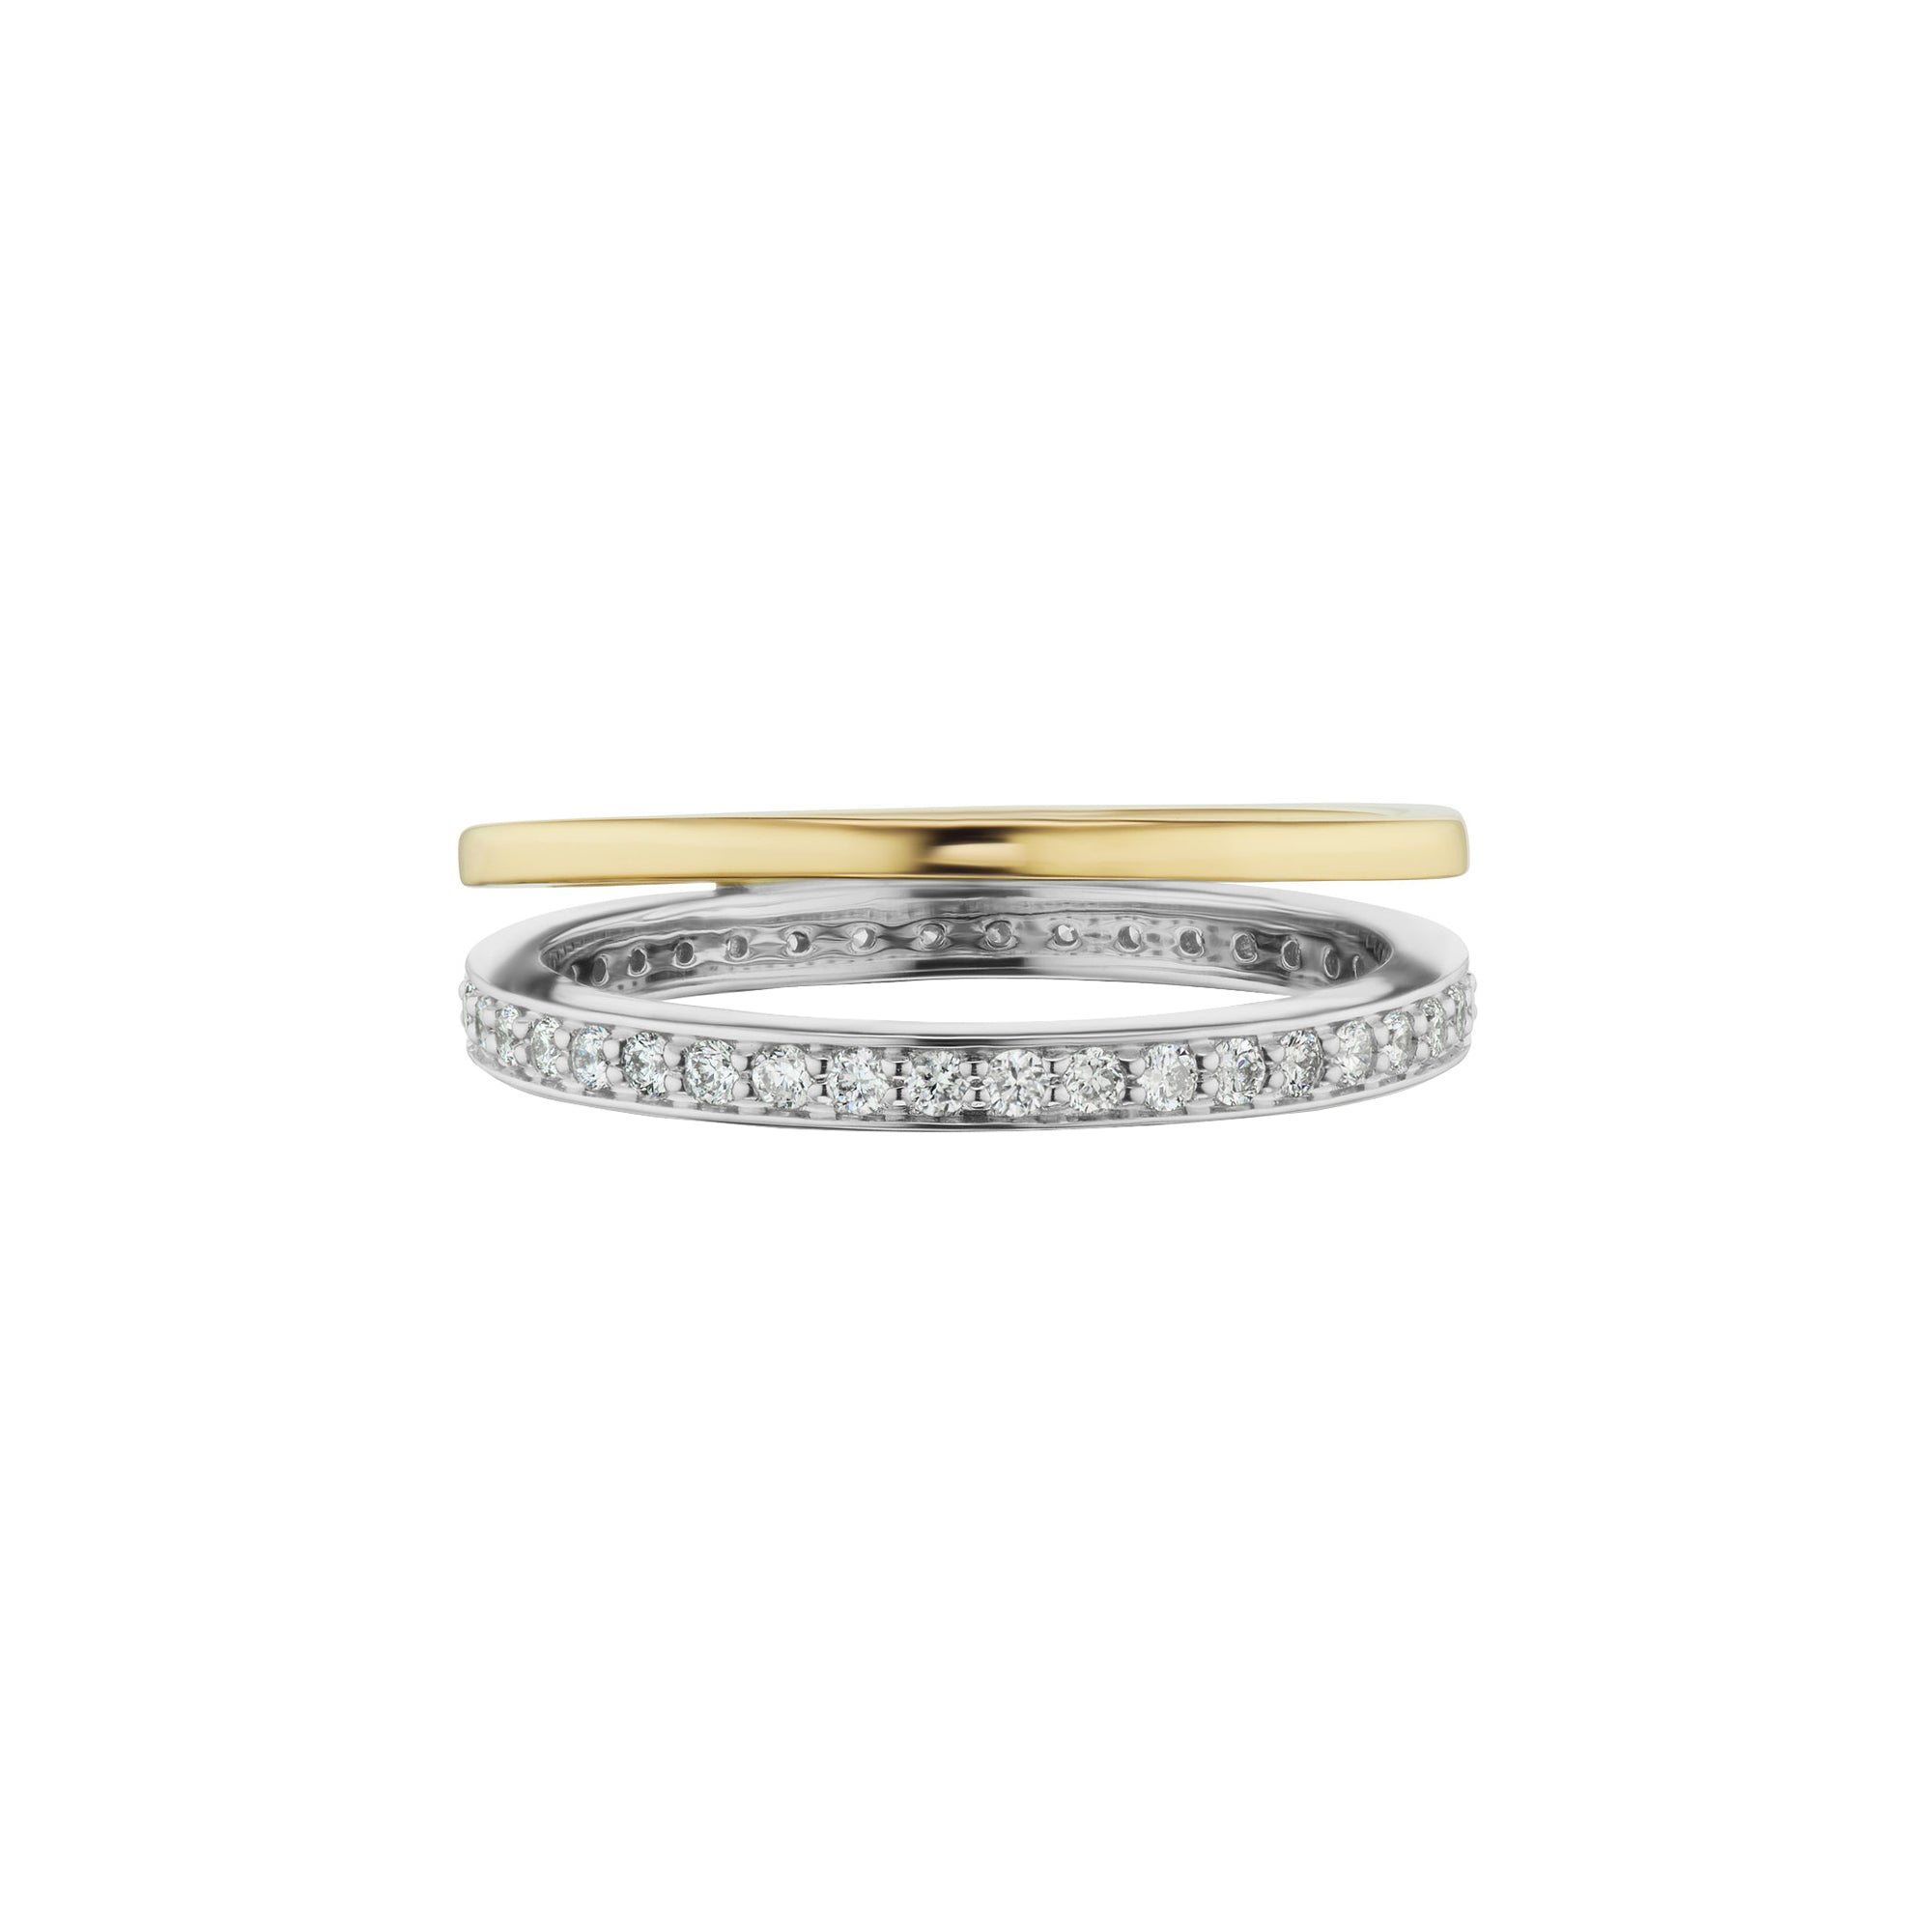 Altruist Espionne Ring I - Yellow & White Gold - Rings - Broken English Jewelry